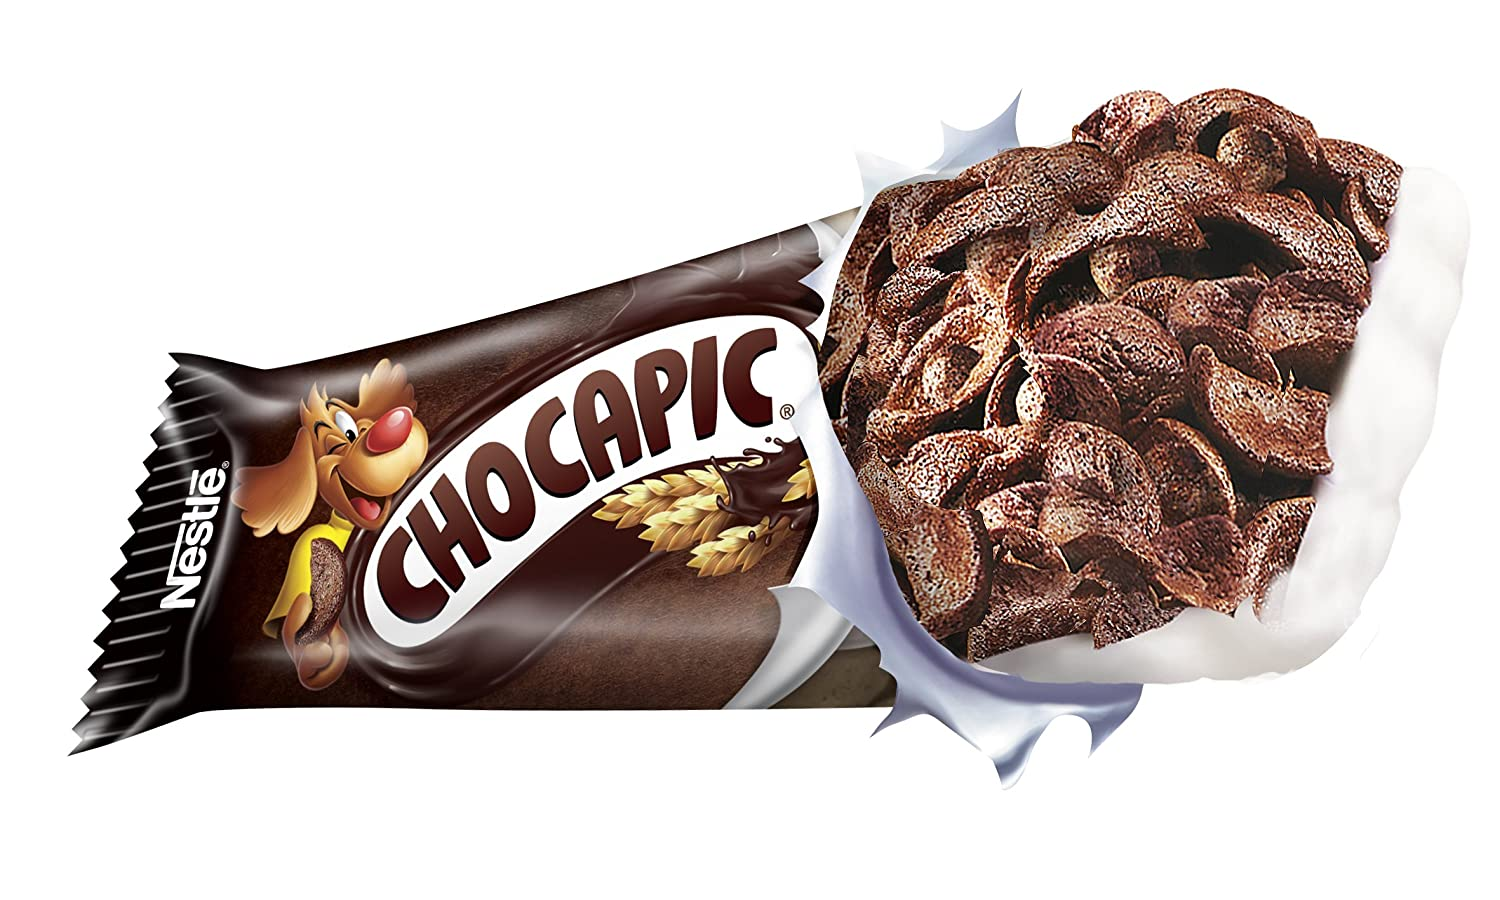 Cereales Nestlé Chocapic Barritas con Chocolate - 6 x 25 gr: Amazon.es: Alimentación y bebidas